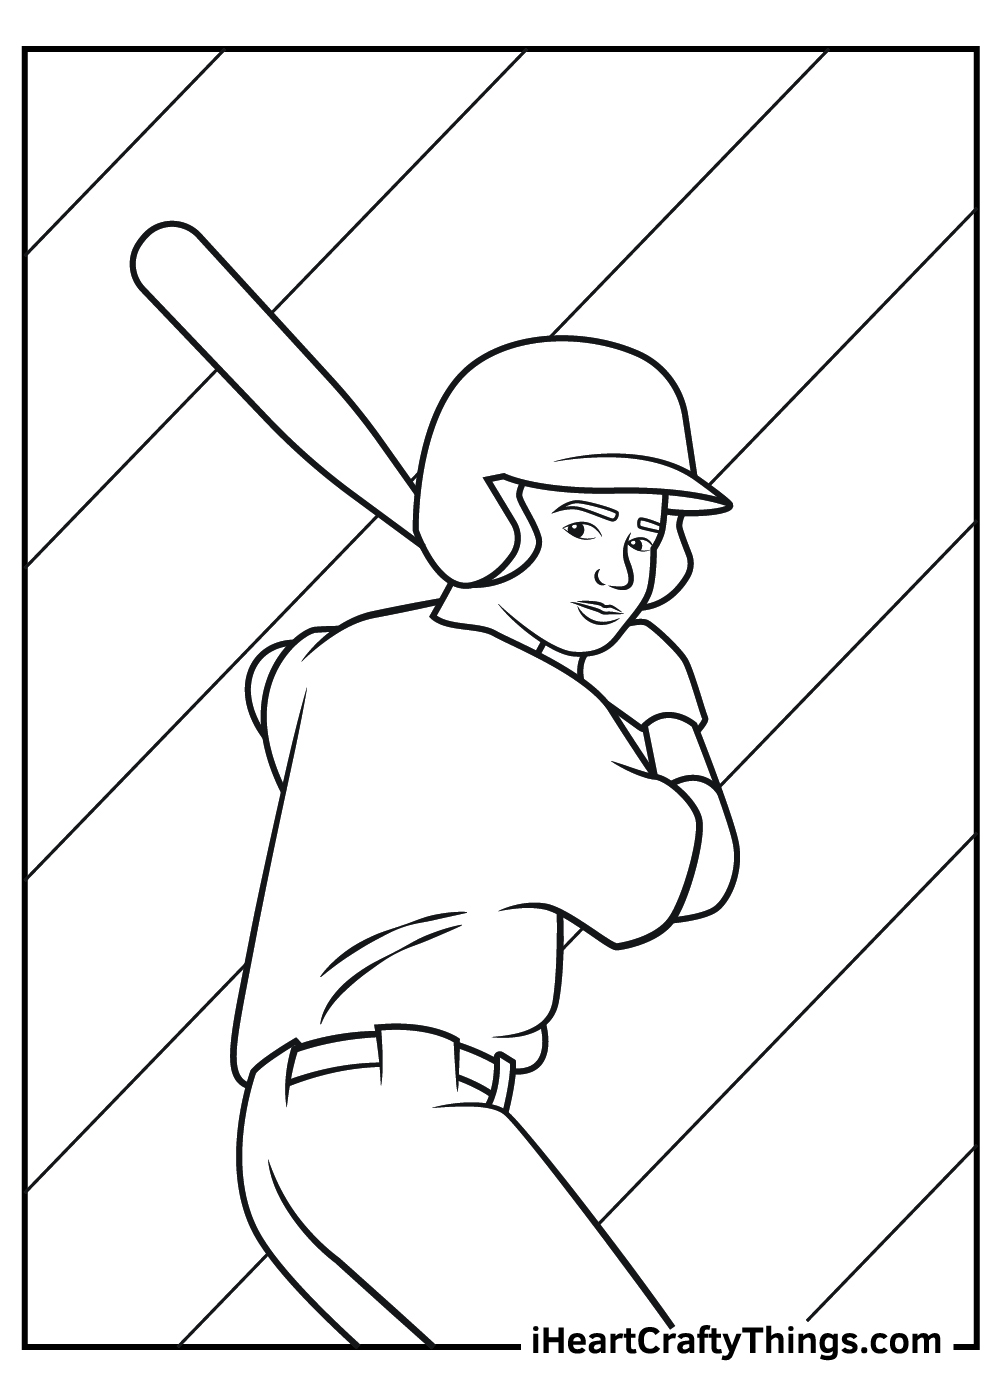 baseball player coloring pages for adults printable